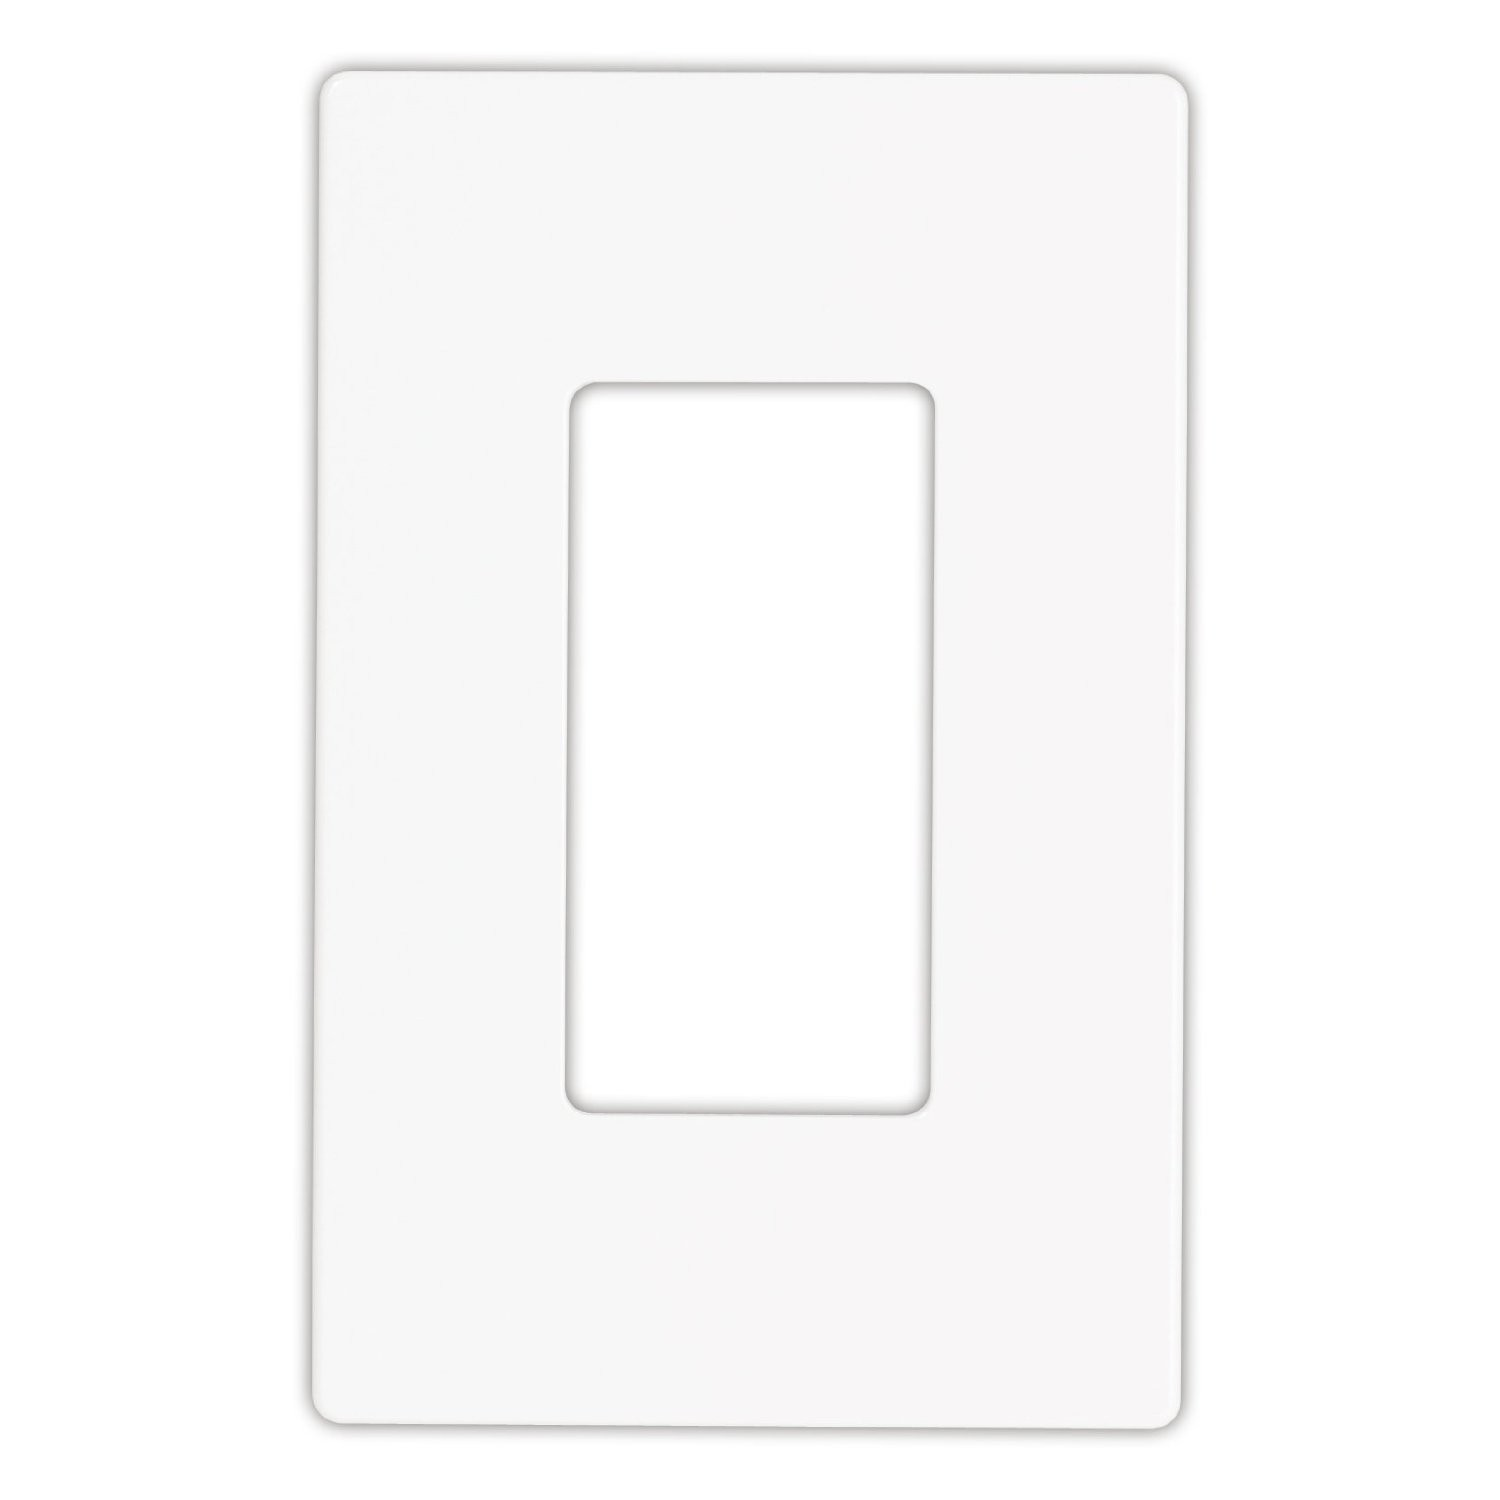 Electrical Wall Plates Cooper Wiring 9521Ws Electrical Wall Plate Aspire Midsized